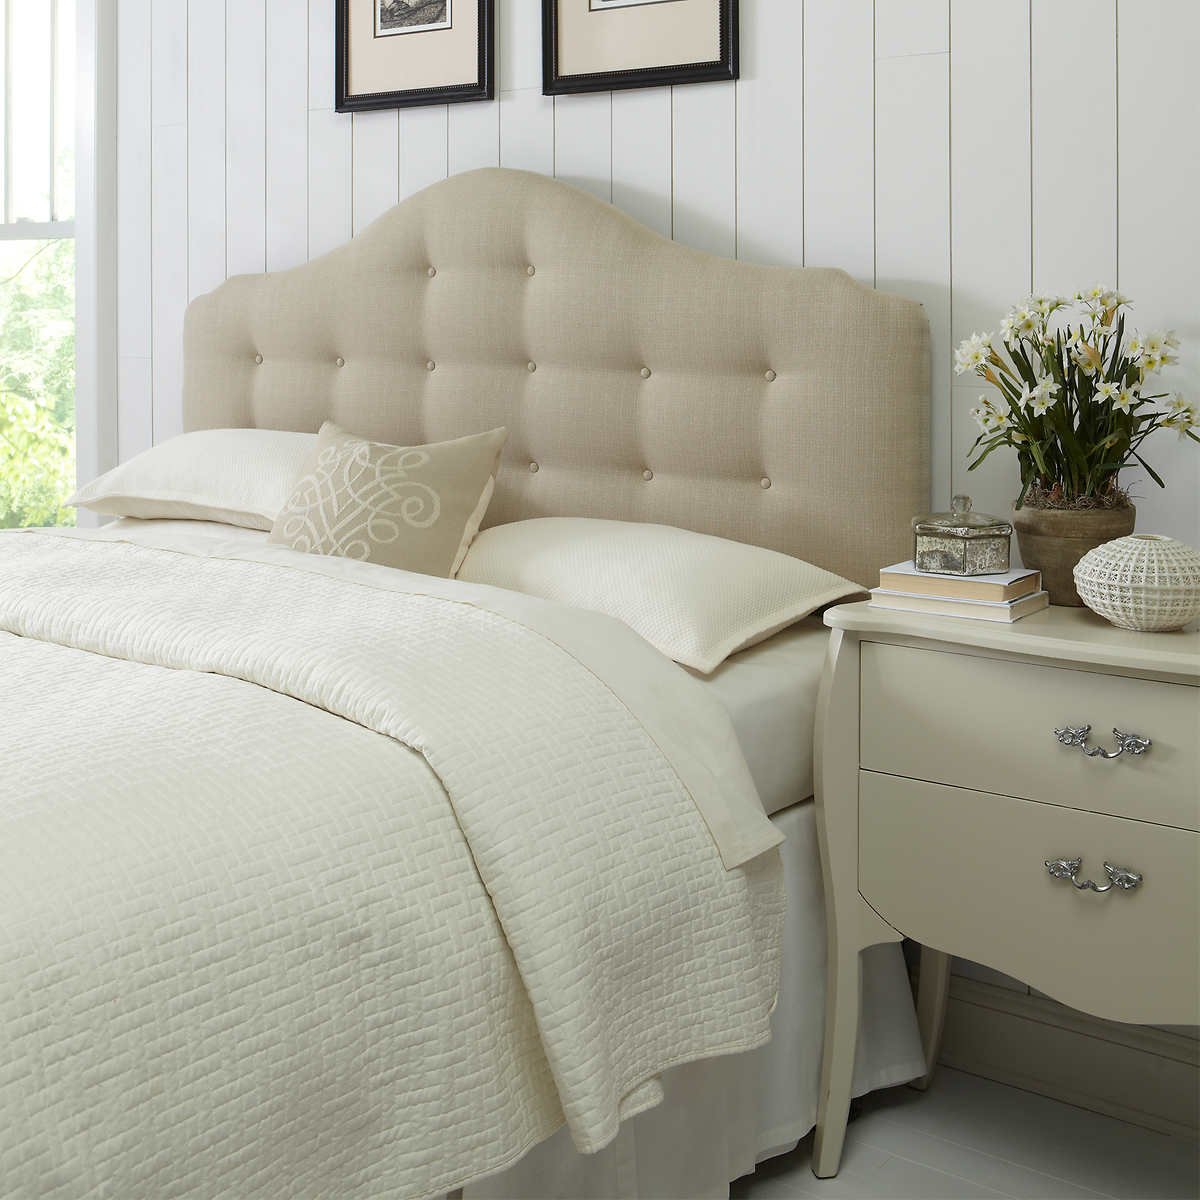 headboards  costco - amanda king upholstered headboard  cream